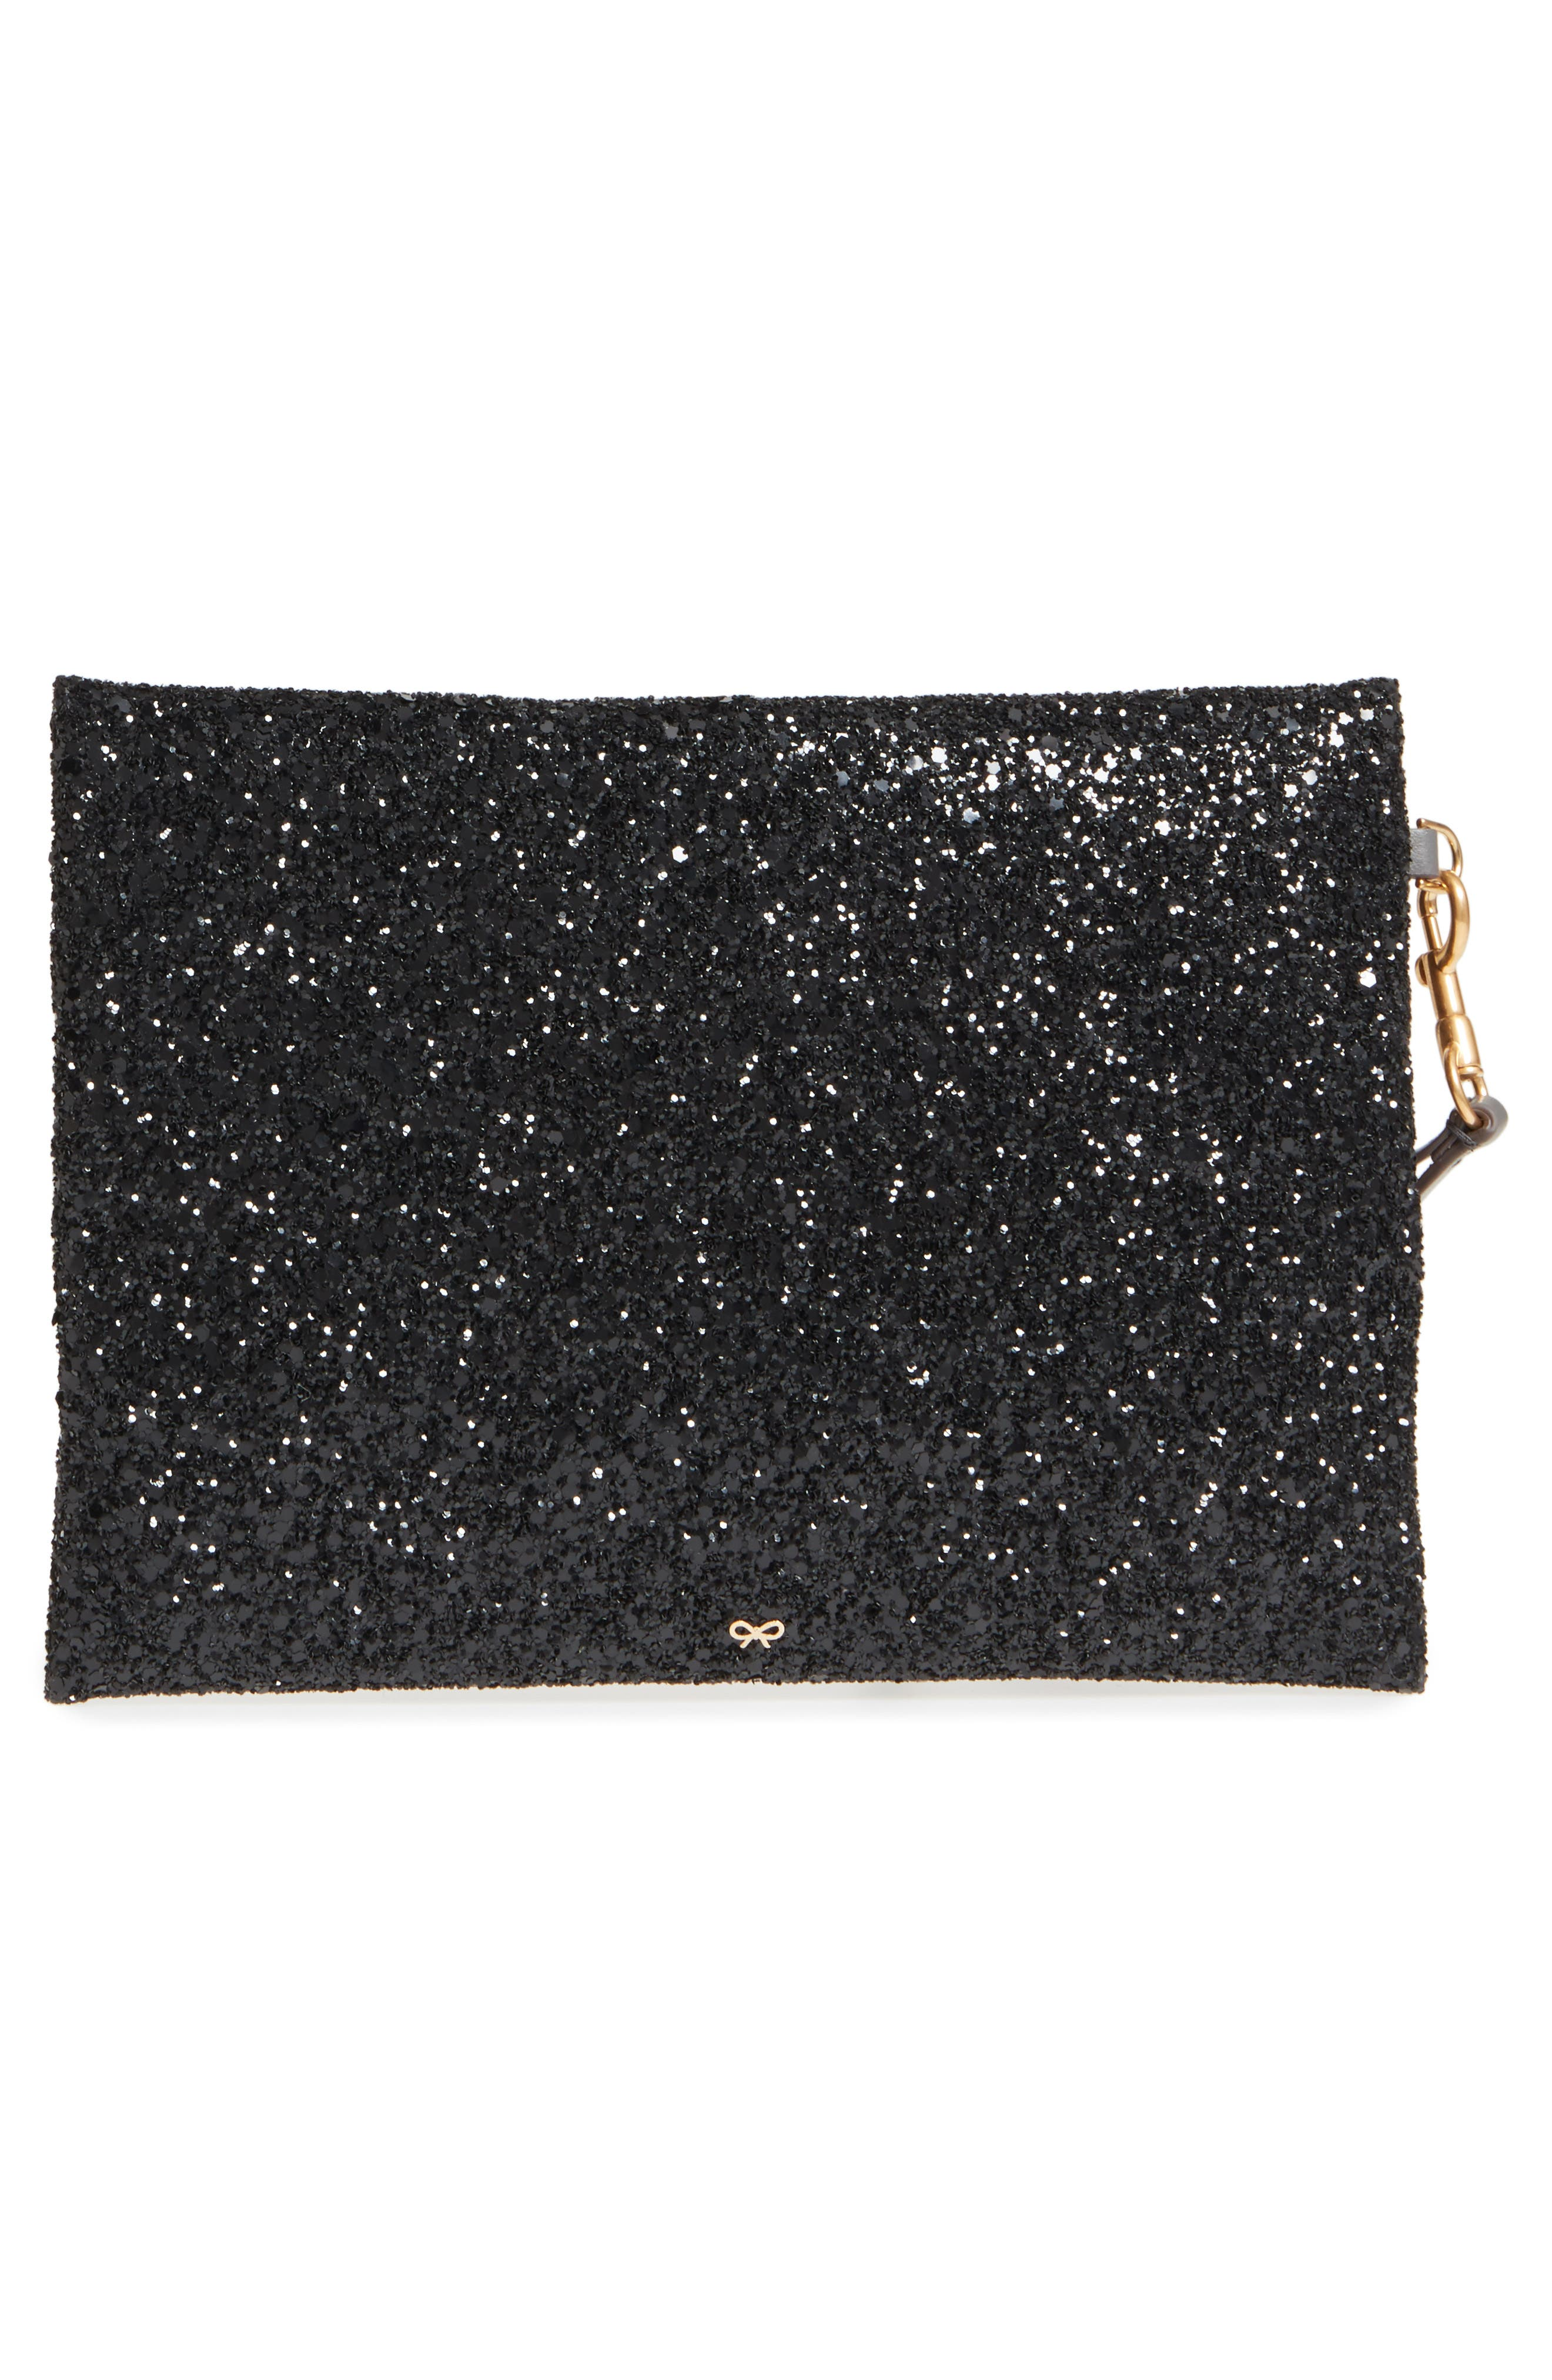 Eyes Circulus Glitter Pouch,                             Alternate thumbnail 3, color,                             001